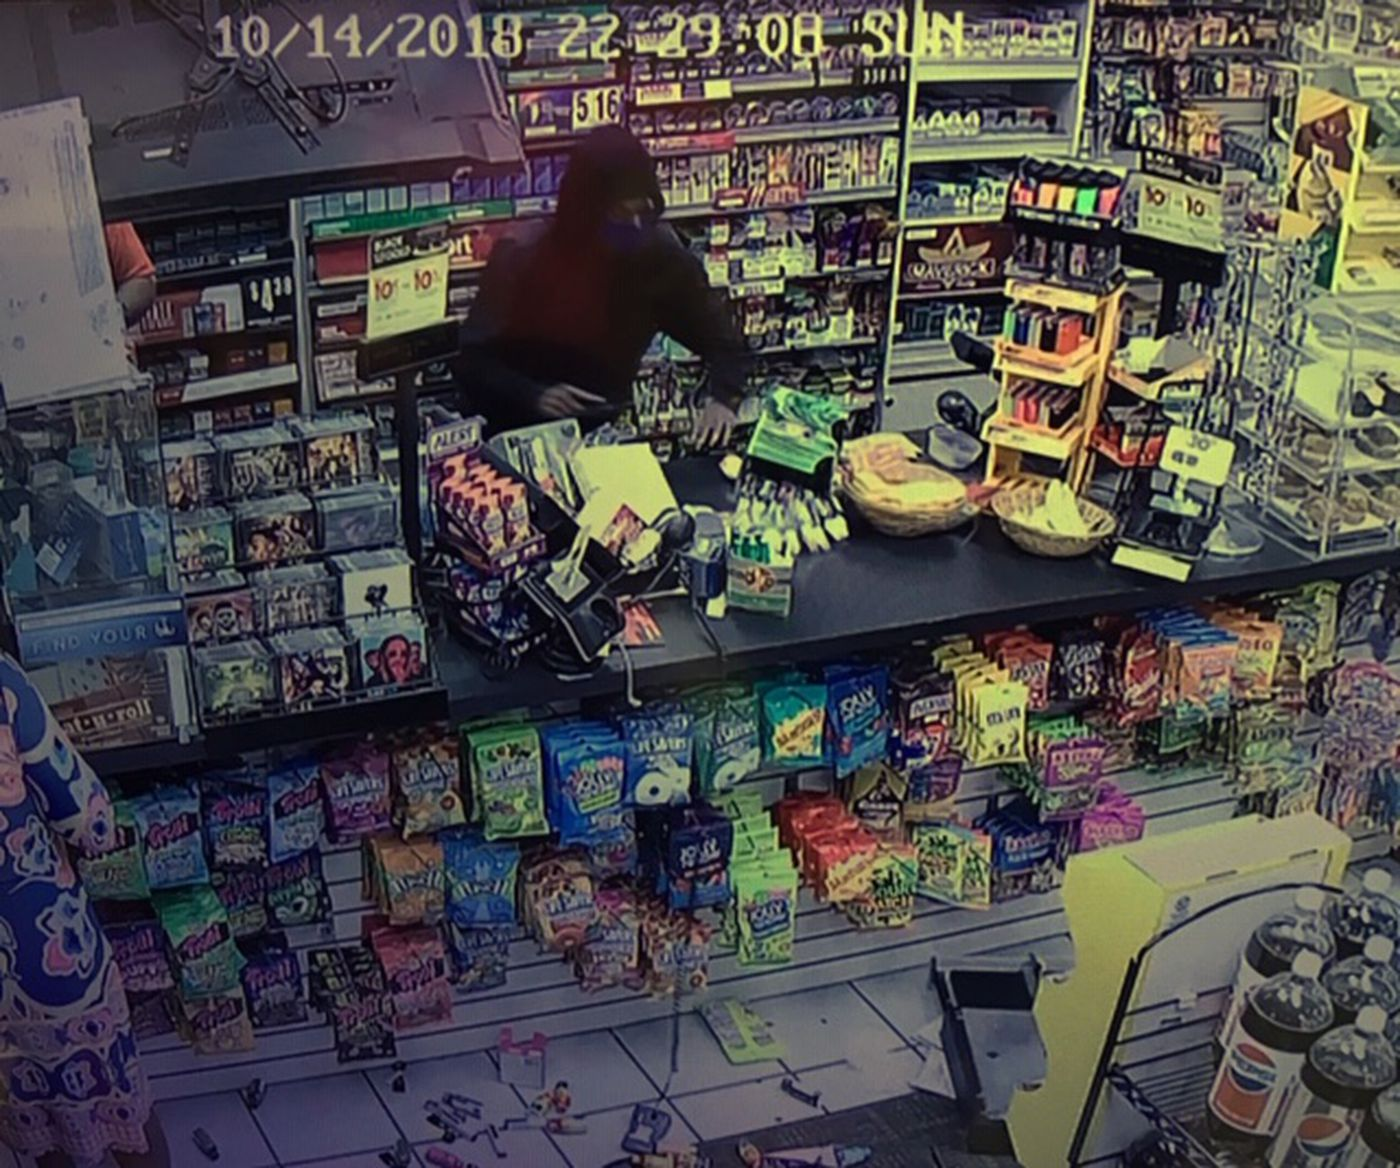 Police searching for suspects in connected Shell gas station robberies